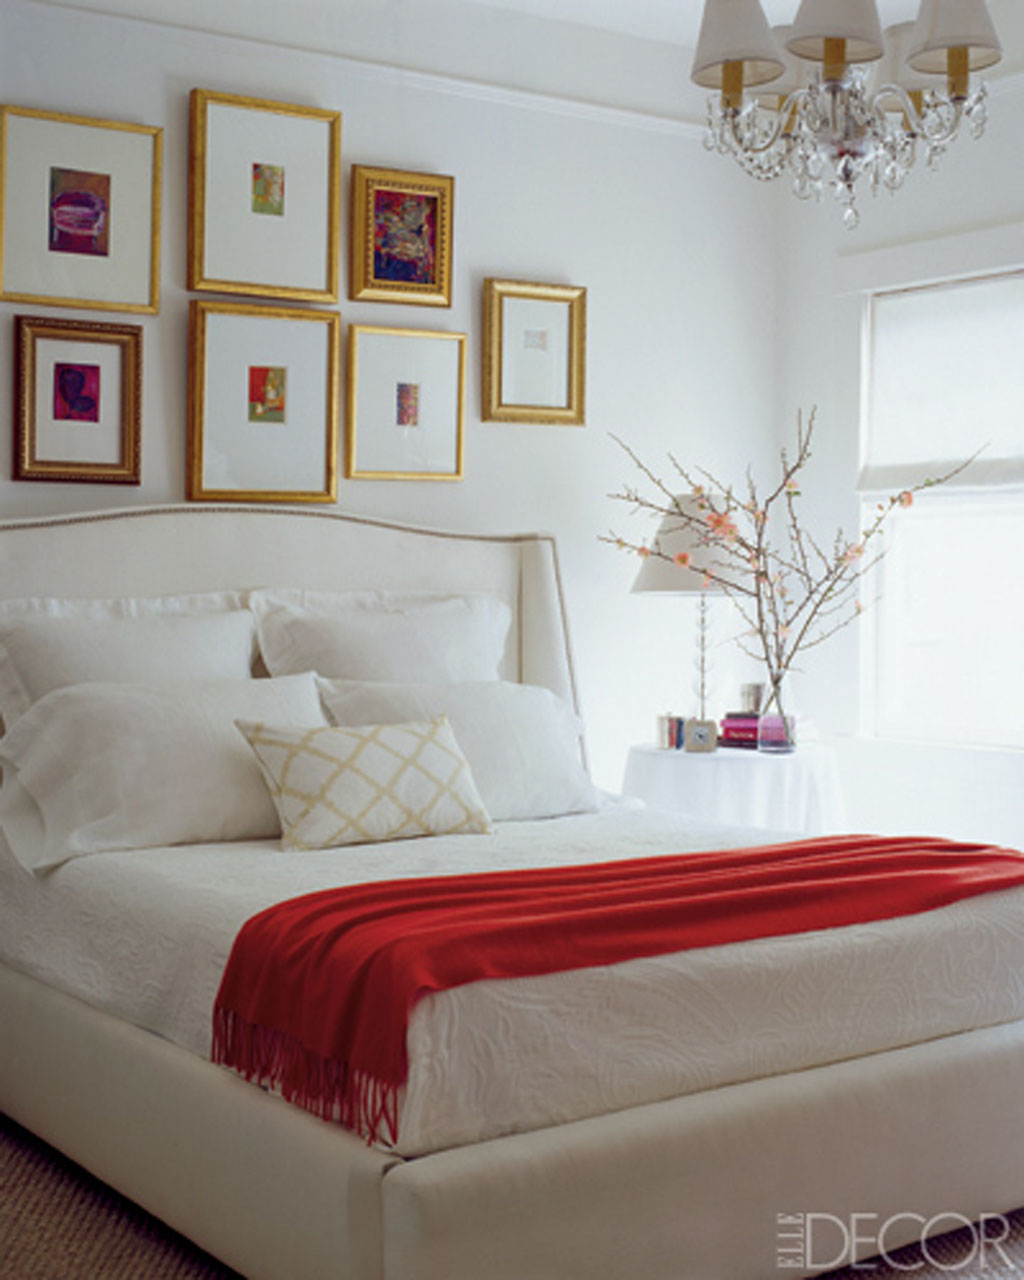 Black white and red bedroom ideas 5 small interior ideas for Black and red bedroom ideas